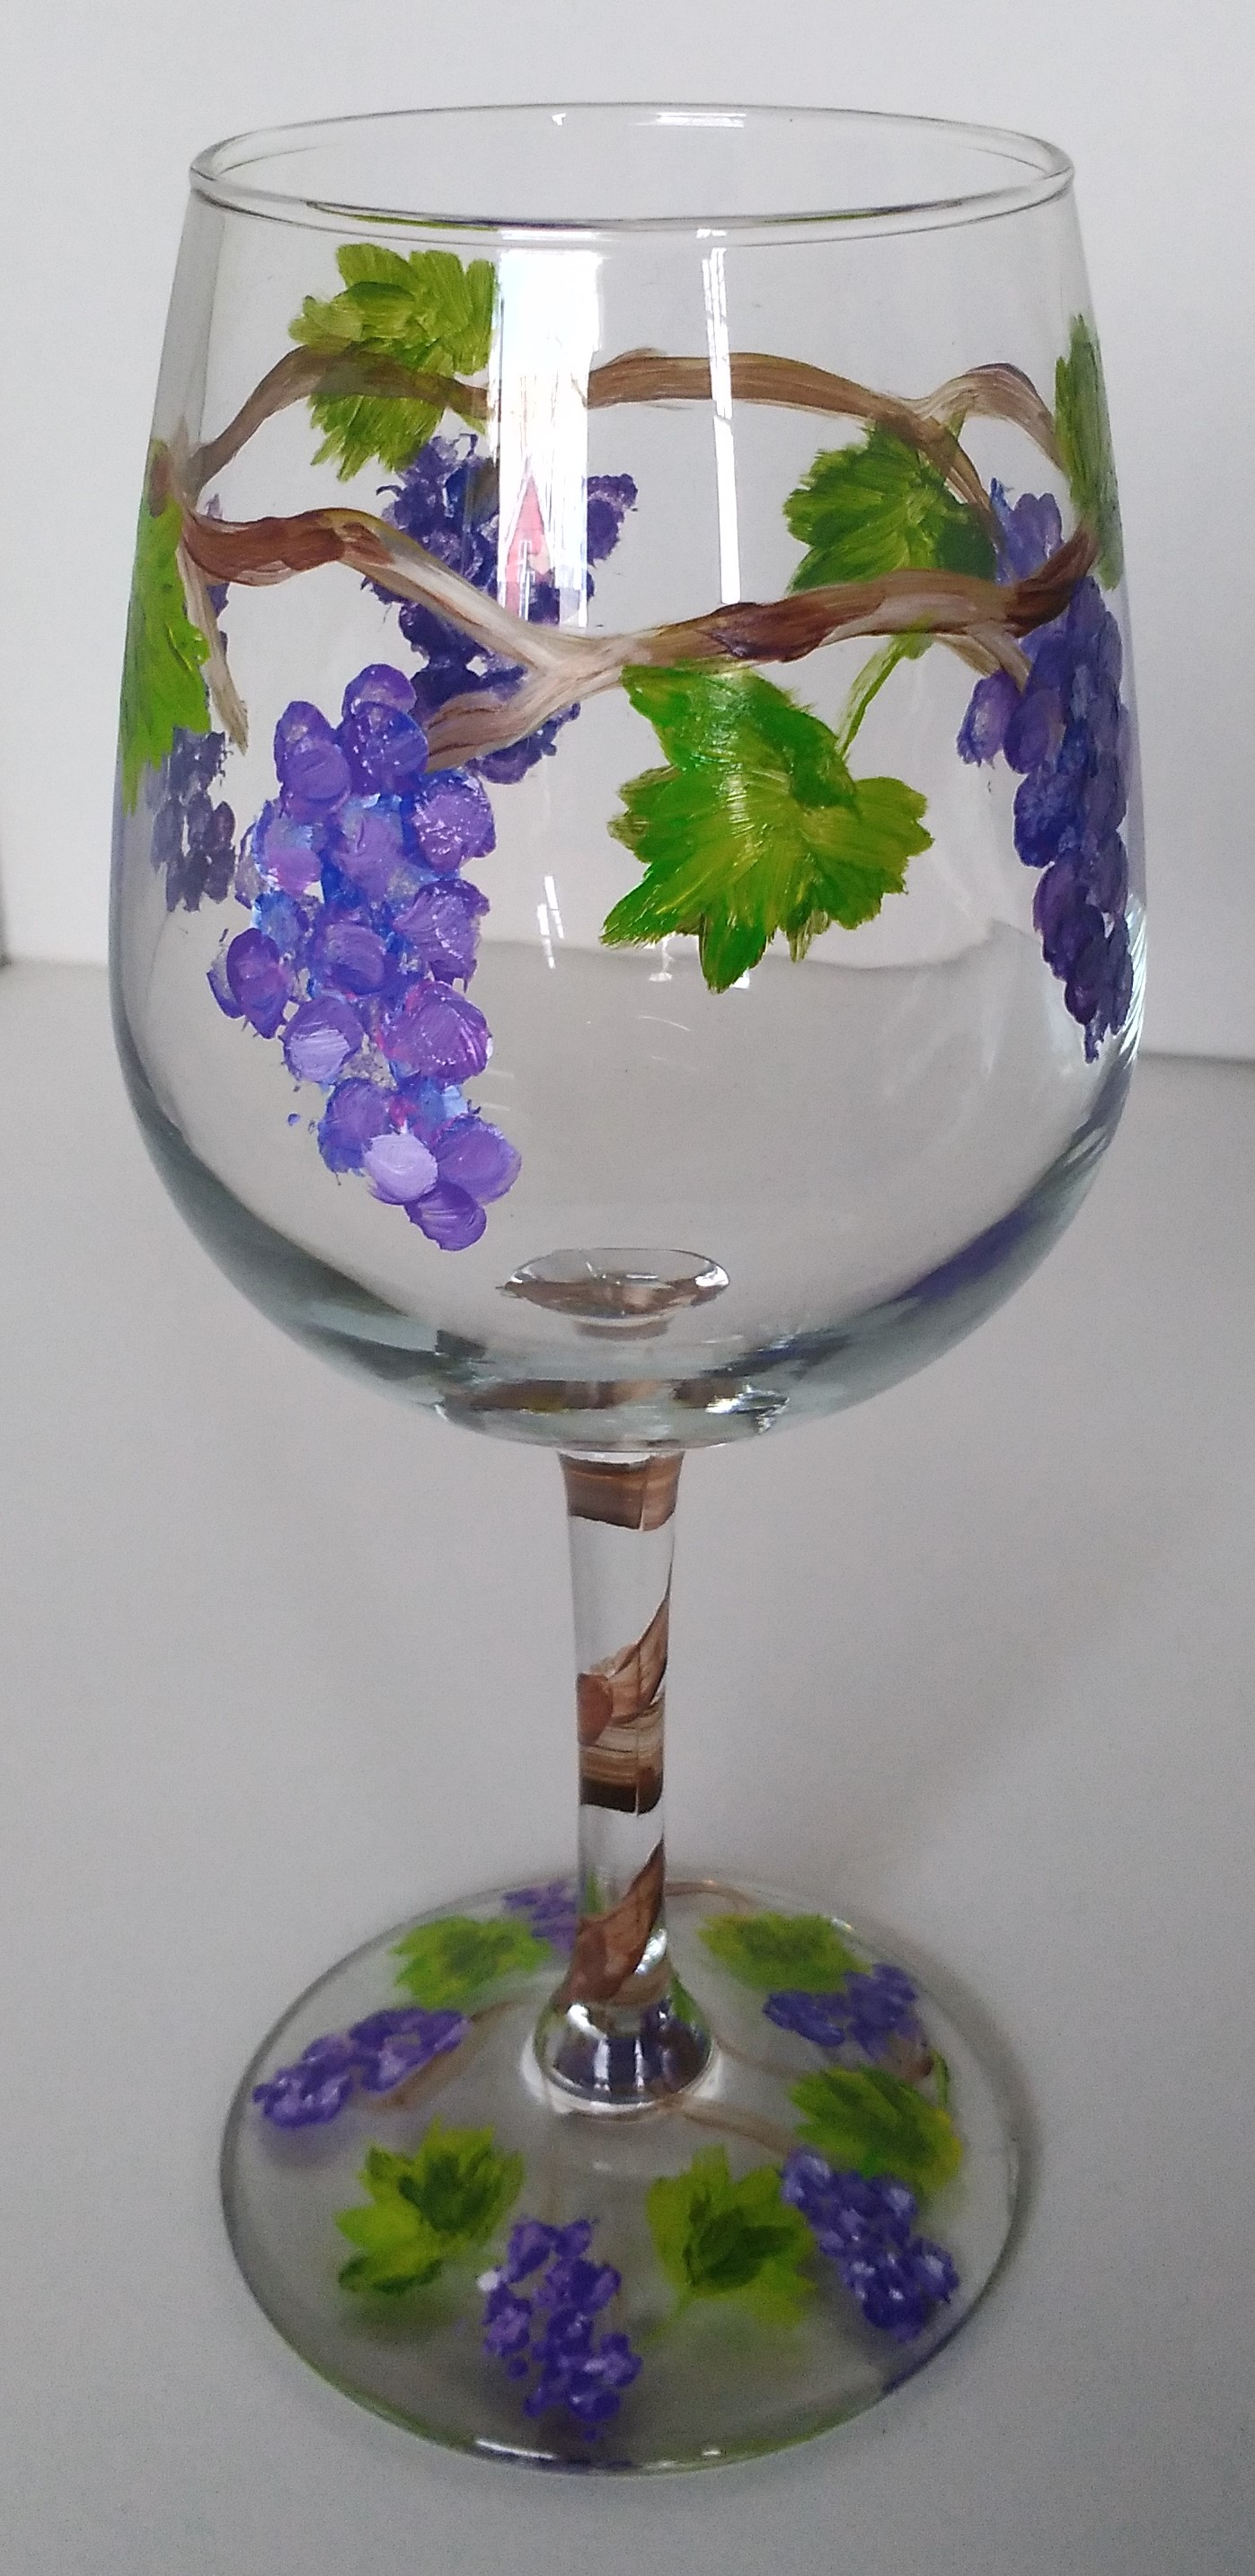 grape-vines-wine-glass-painting-malowany